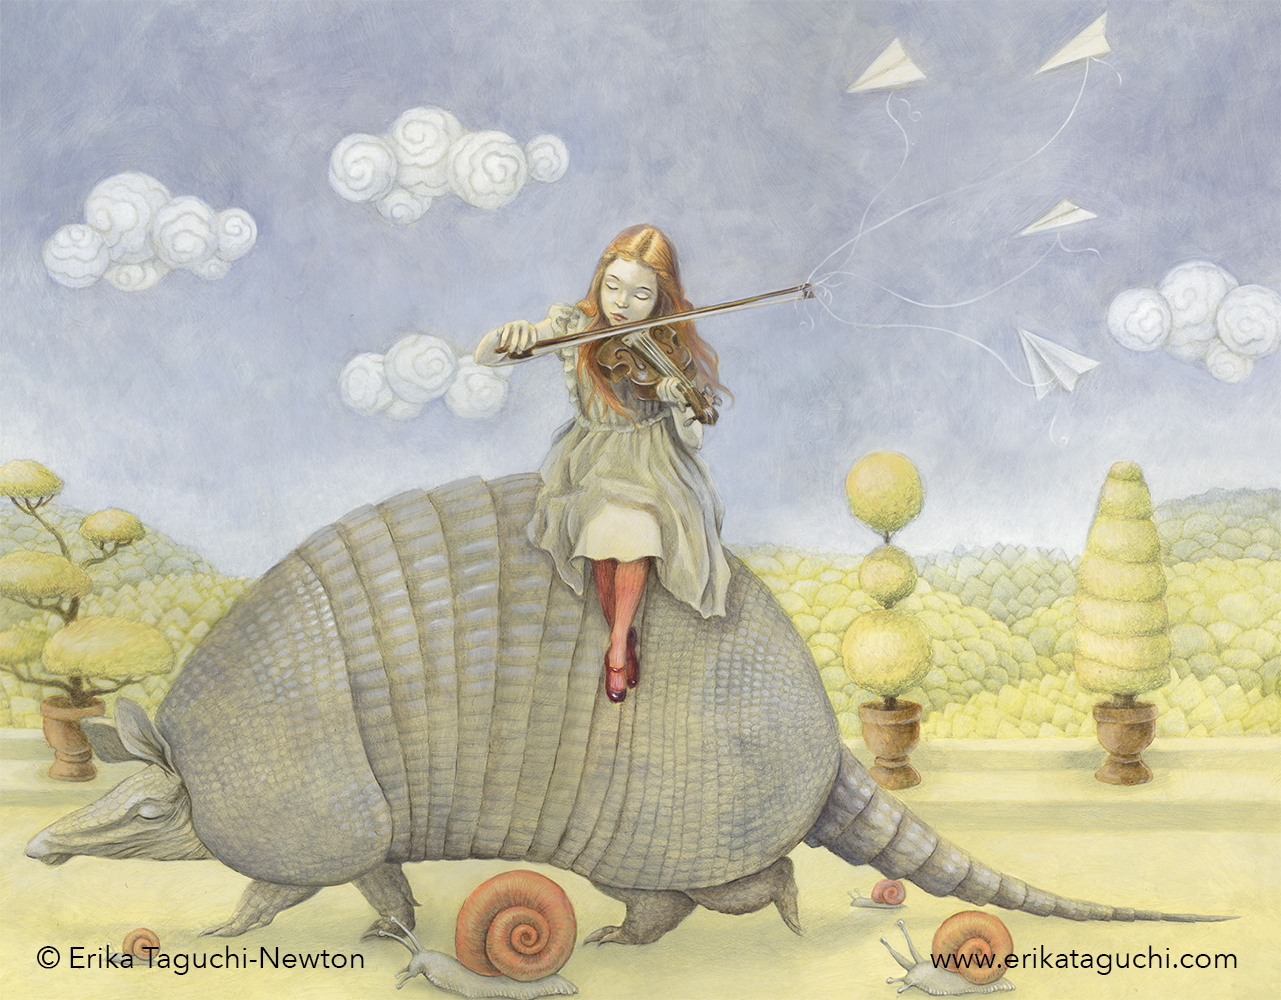 Armadillo Dream by Erika Taguchi-Newton